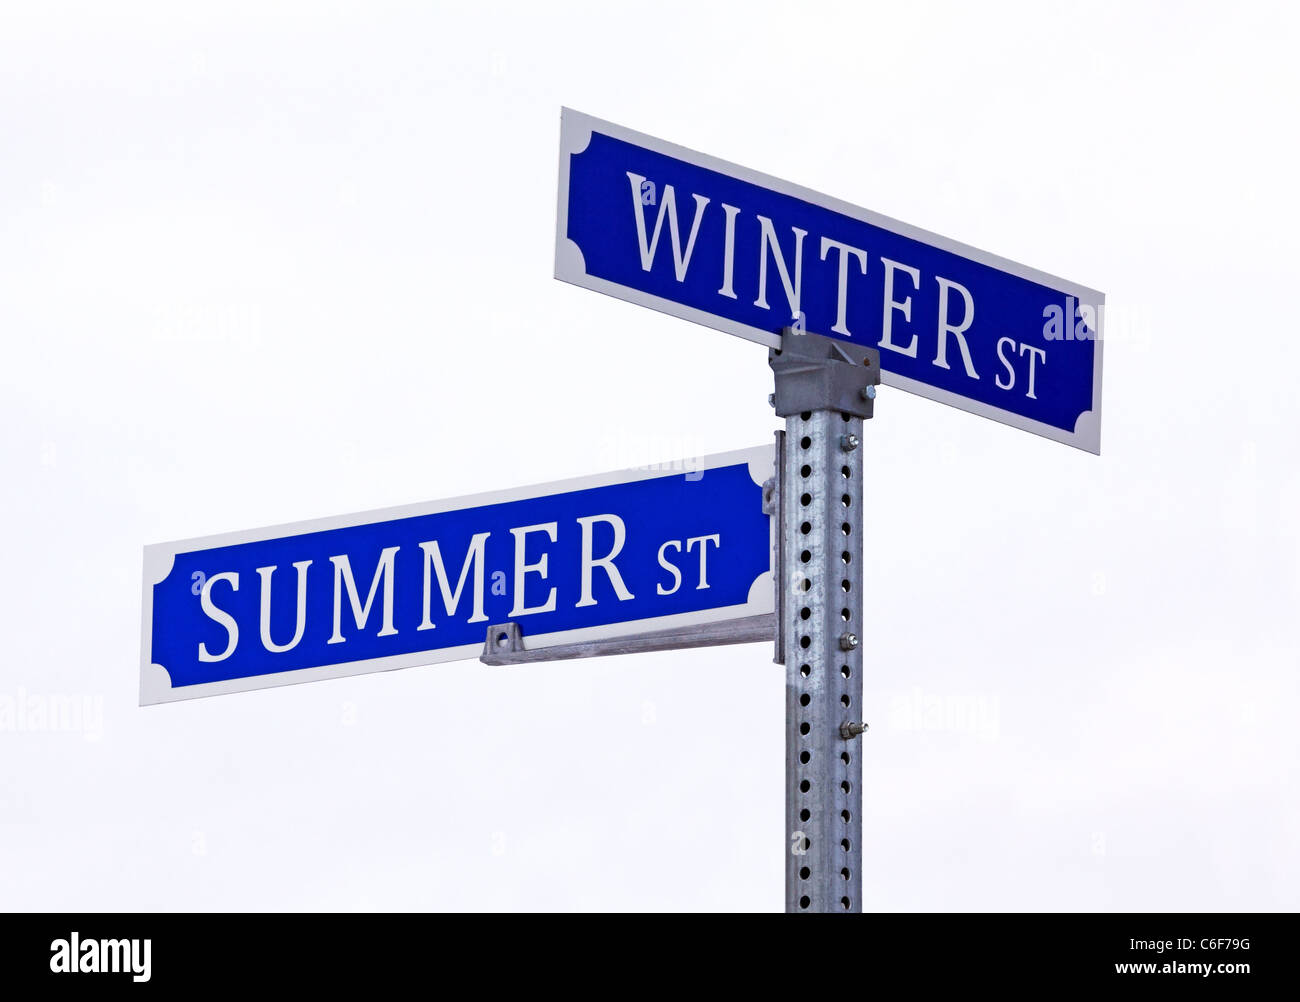 Summer winter street sign isolated on white background. - Stock Image